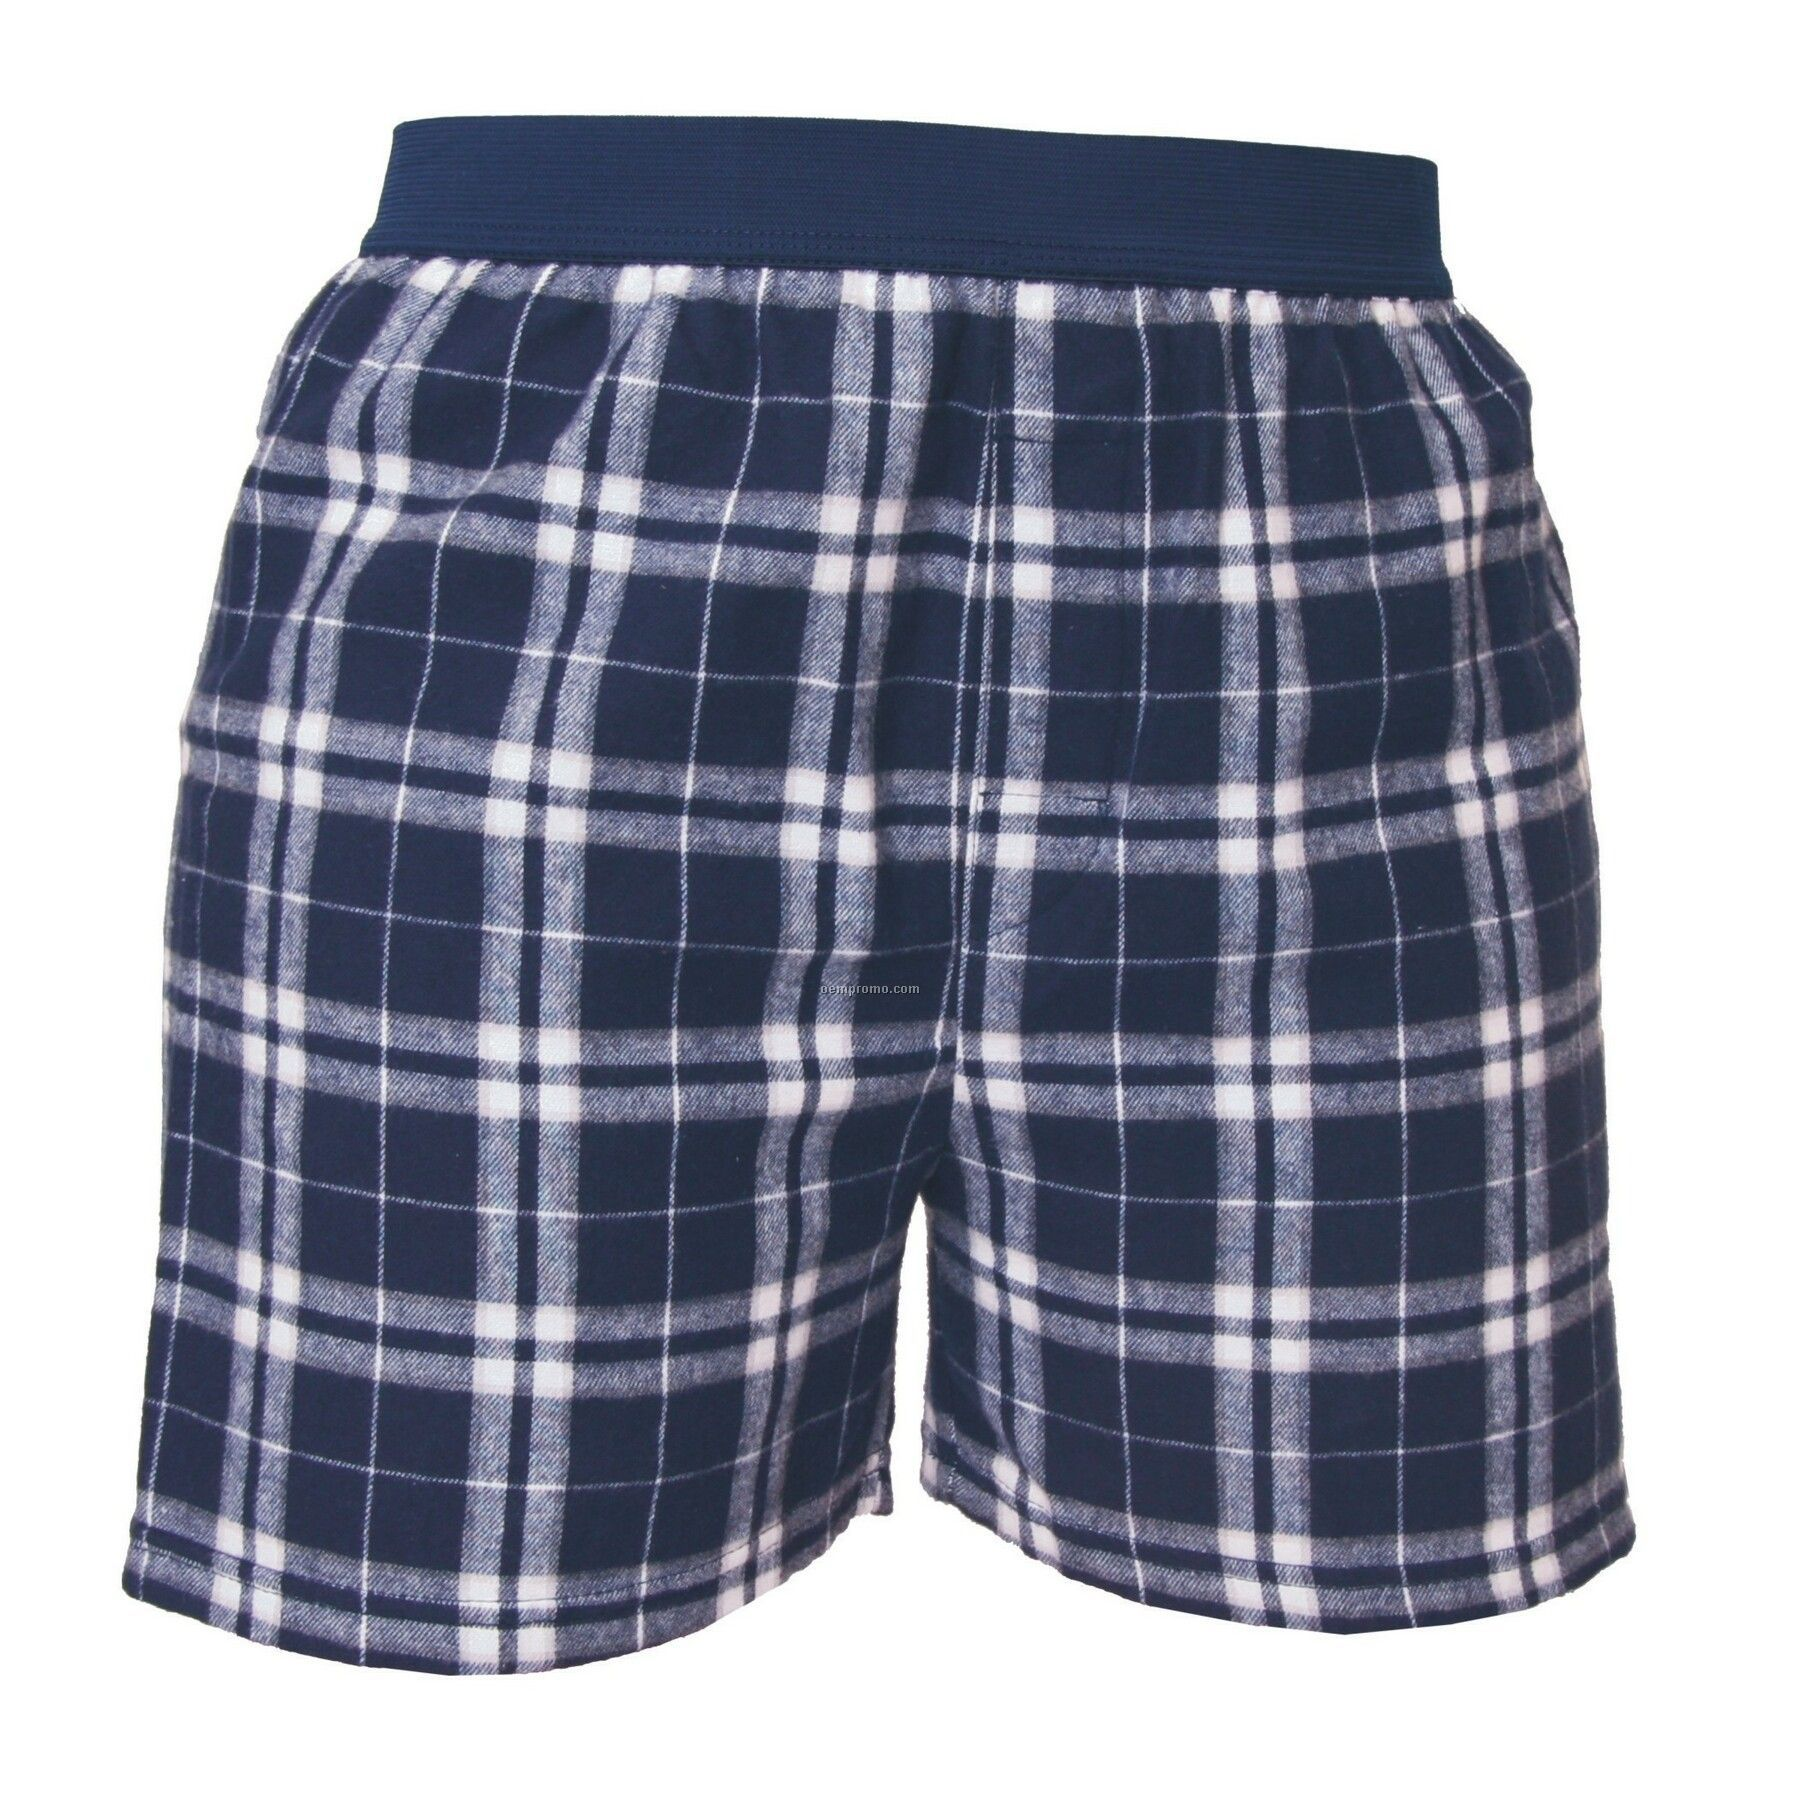 Youth Navy Blue/Silver Plaid Classic Boxer Short